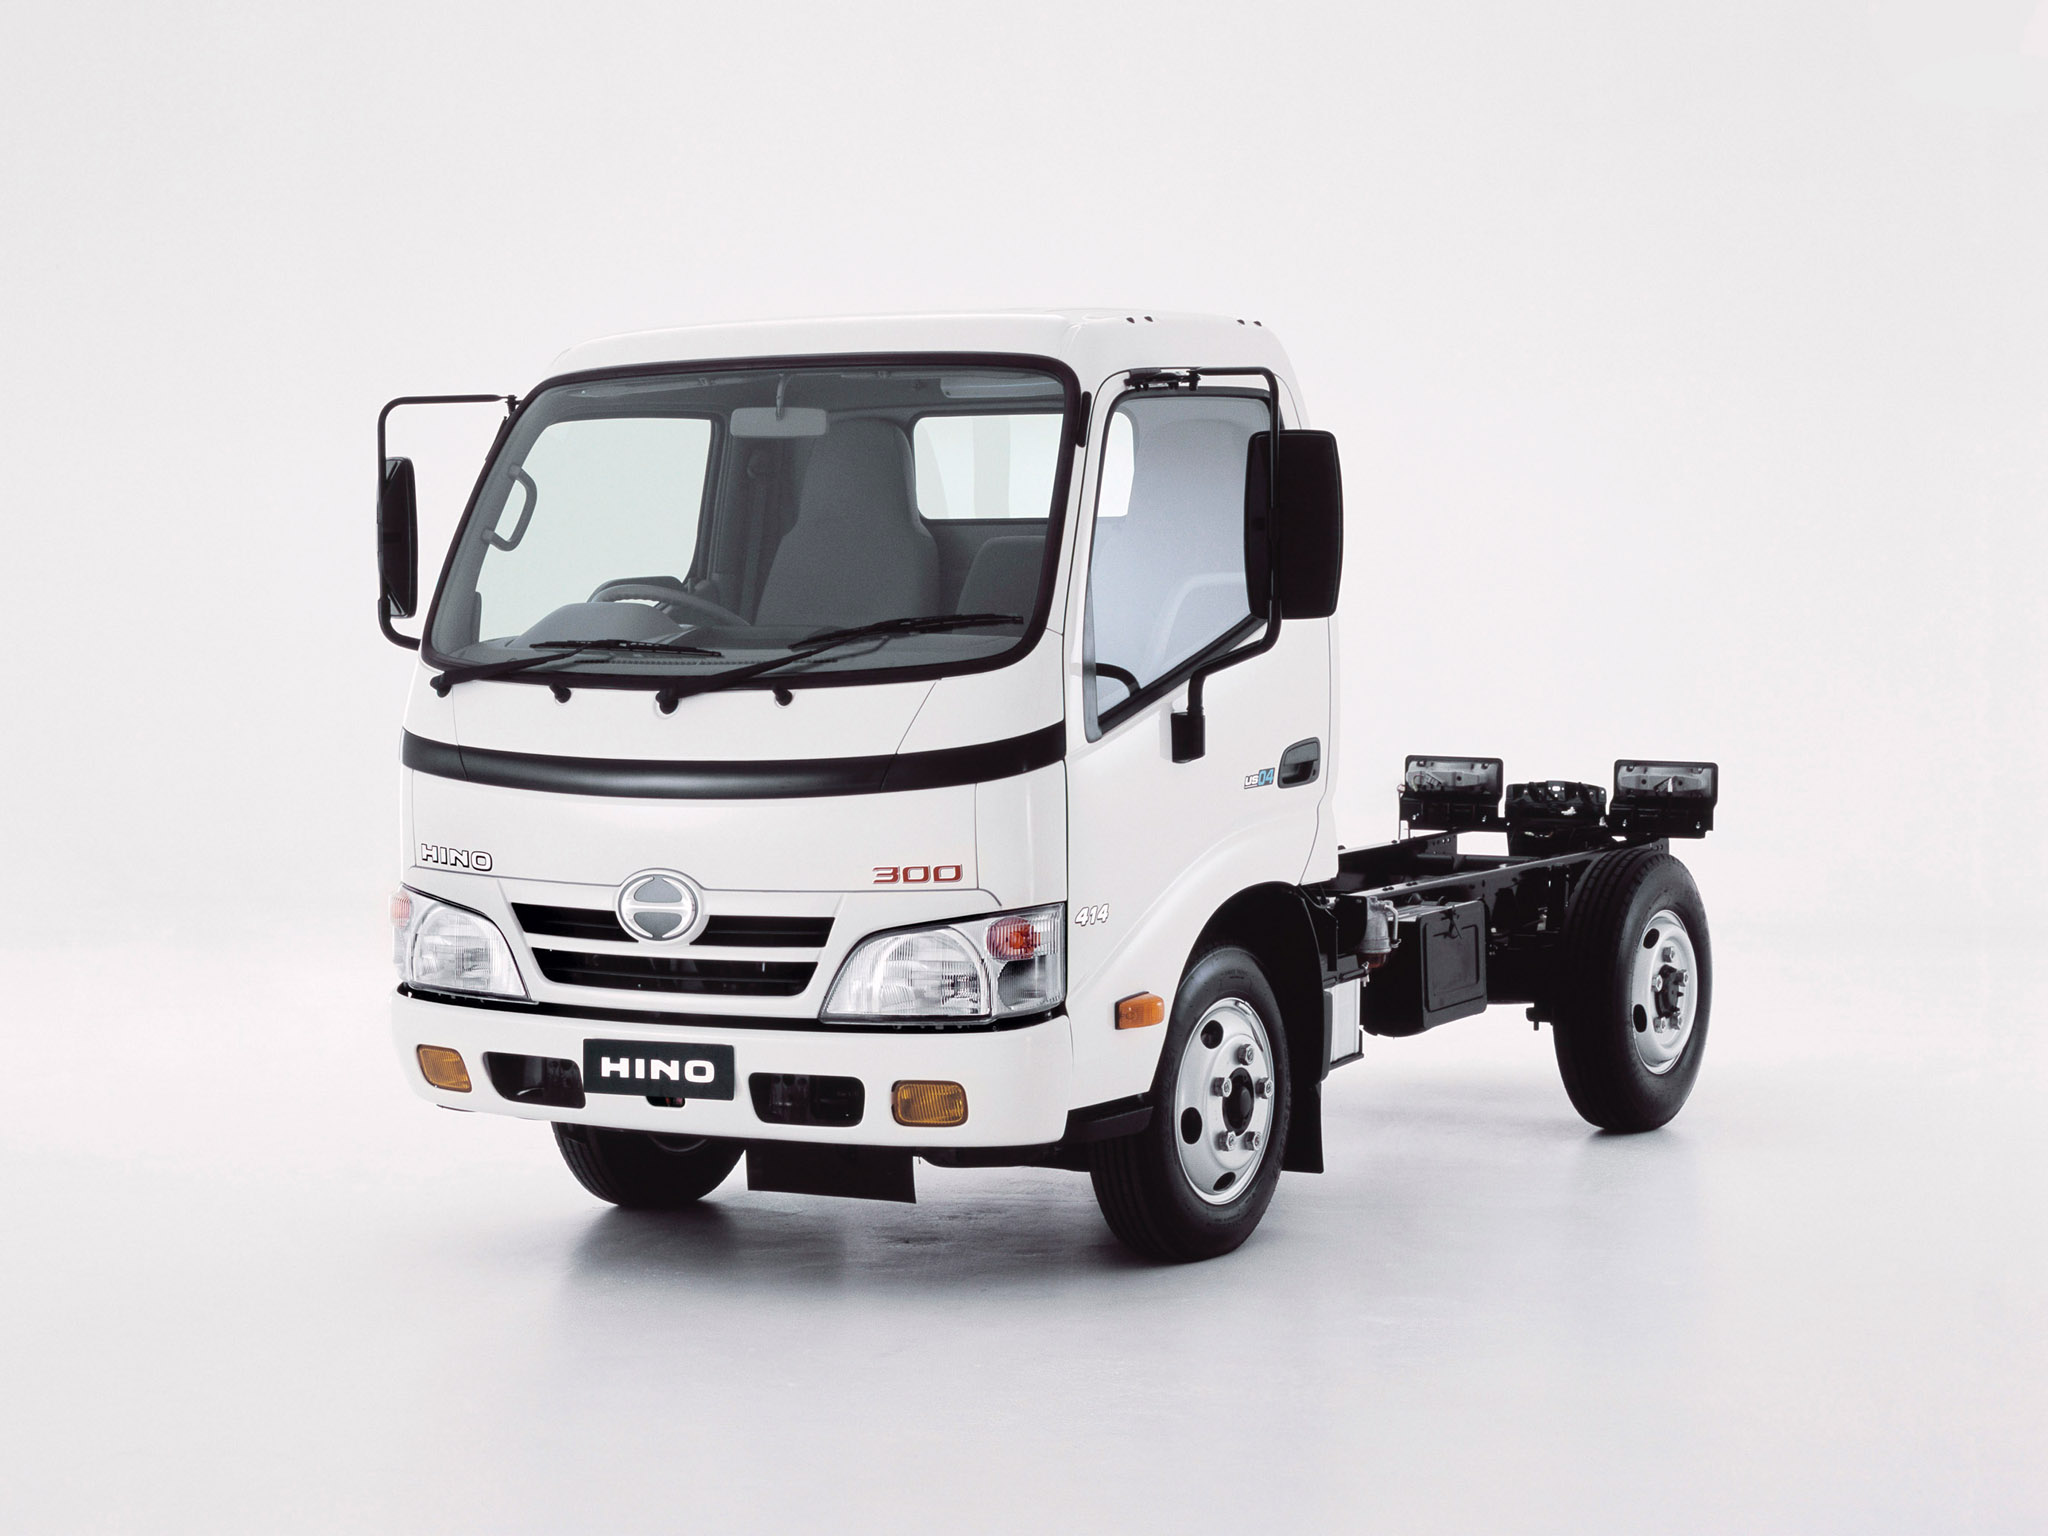 Hino Dutro 300 Series Africa Automotive